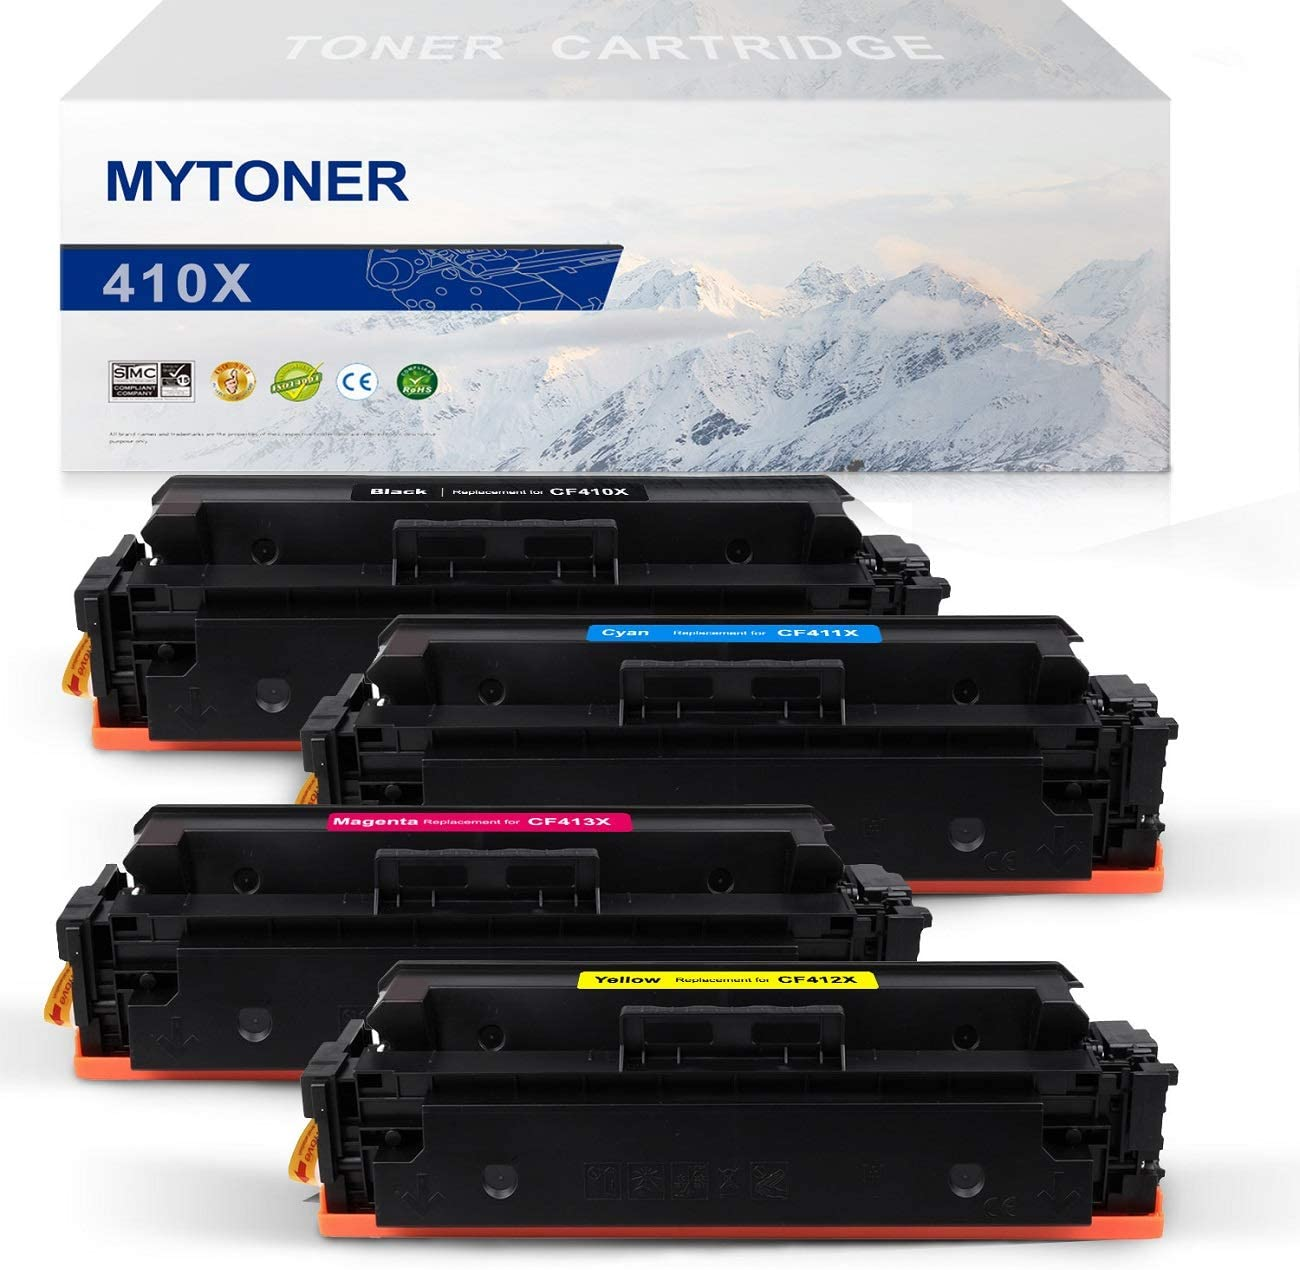 MYTONER Compatible Toner Cartridge Replacement for HP 410X CF410X 410A CF410A High Yield (Black Cyan Magenta Yellow, 4-Pack)